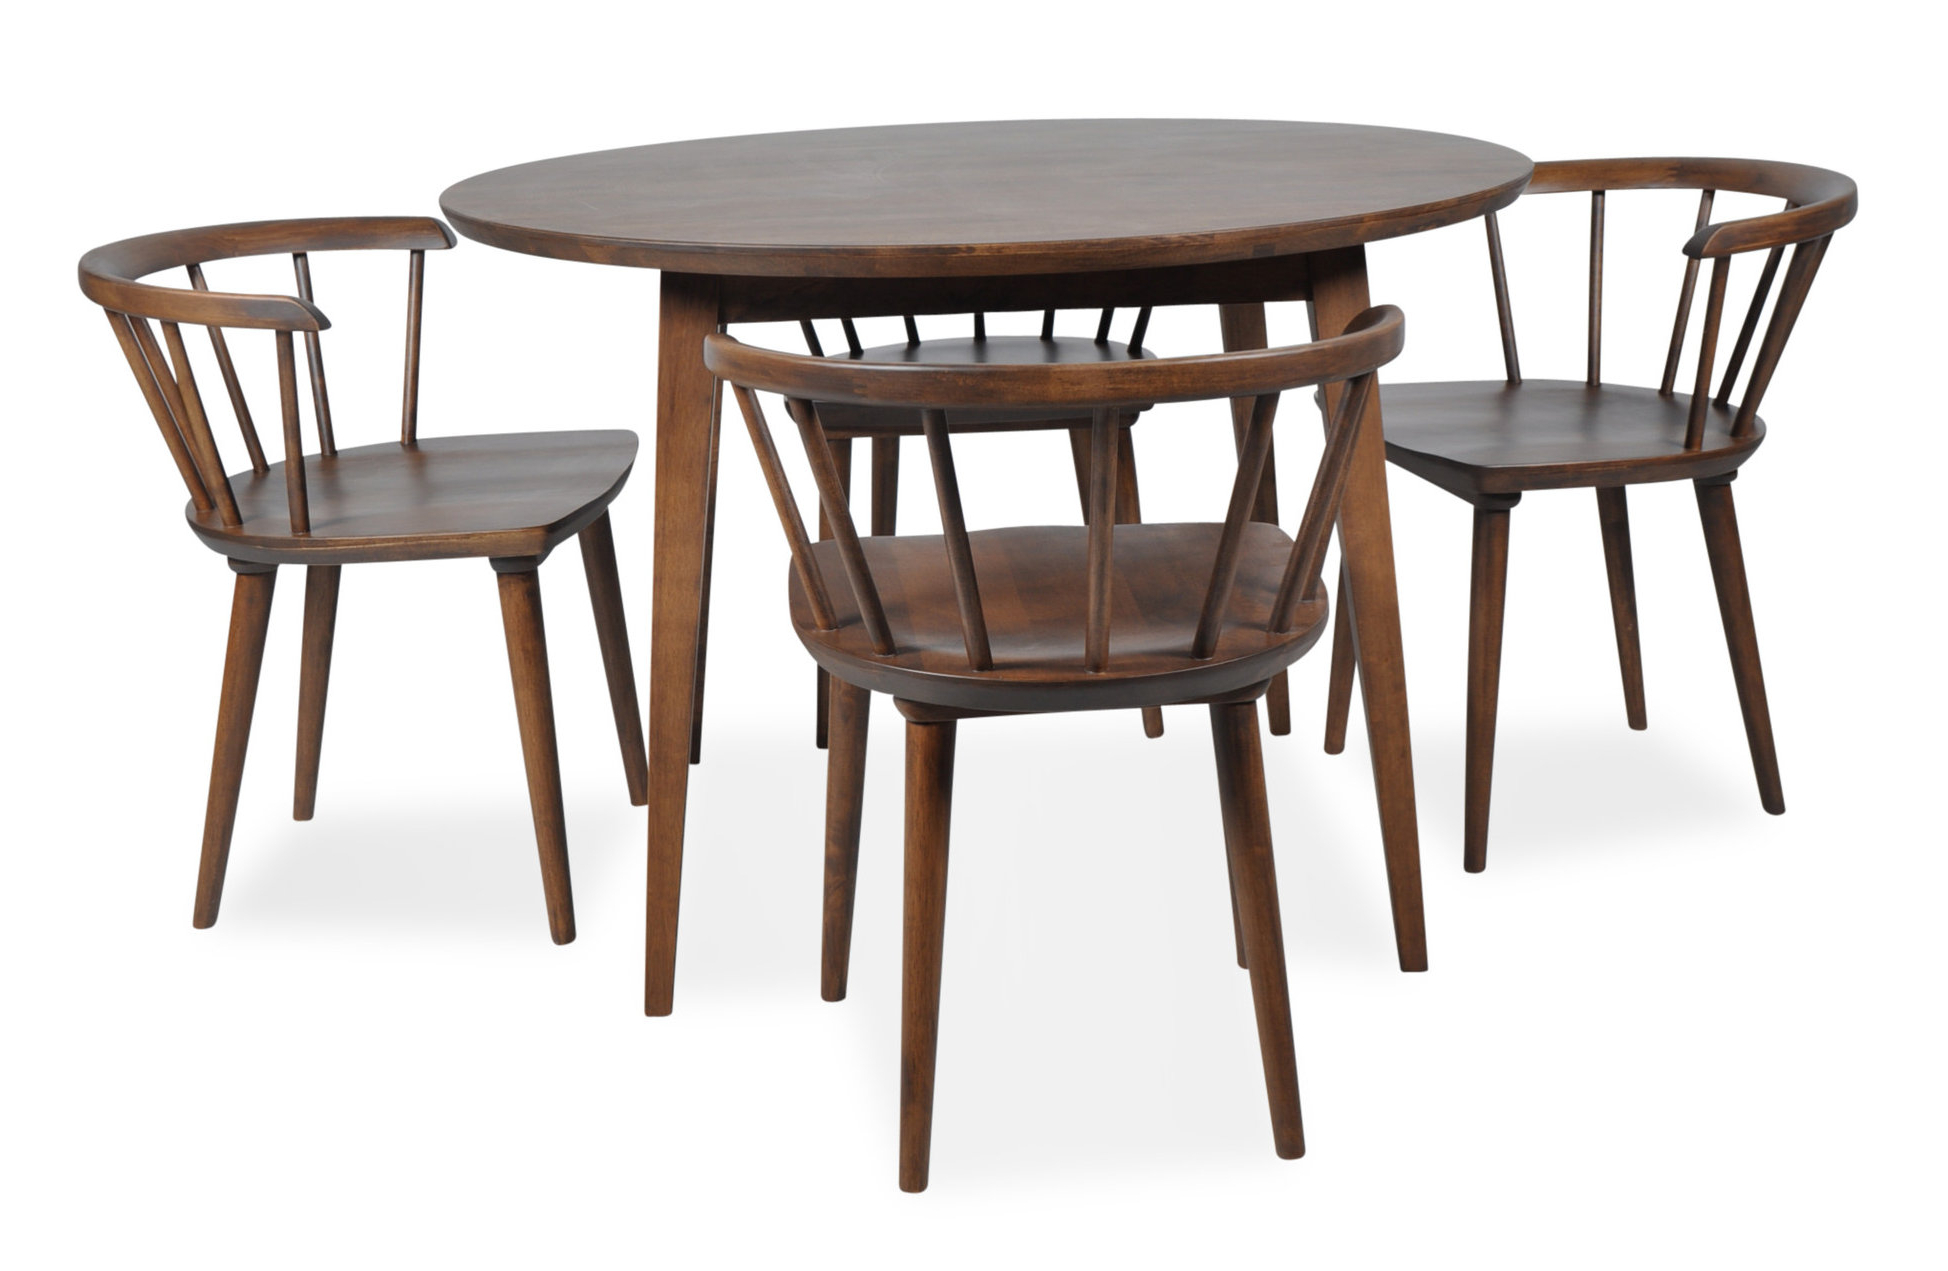 Best And Newest 5 Piece Breakfast Nook Dining Sets Regarding Burgan 5 Piece Solid Wood Breakfast Nook Dining Set & Reviews (View 7 of 25)